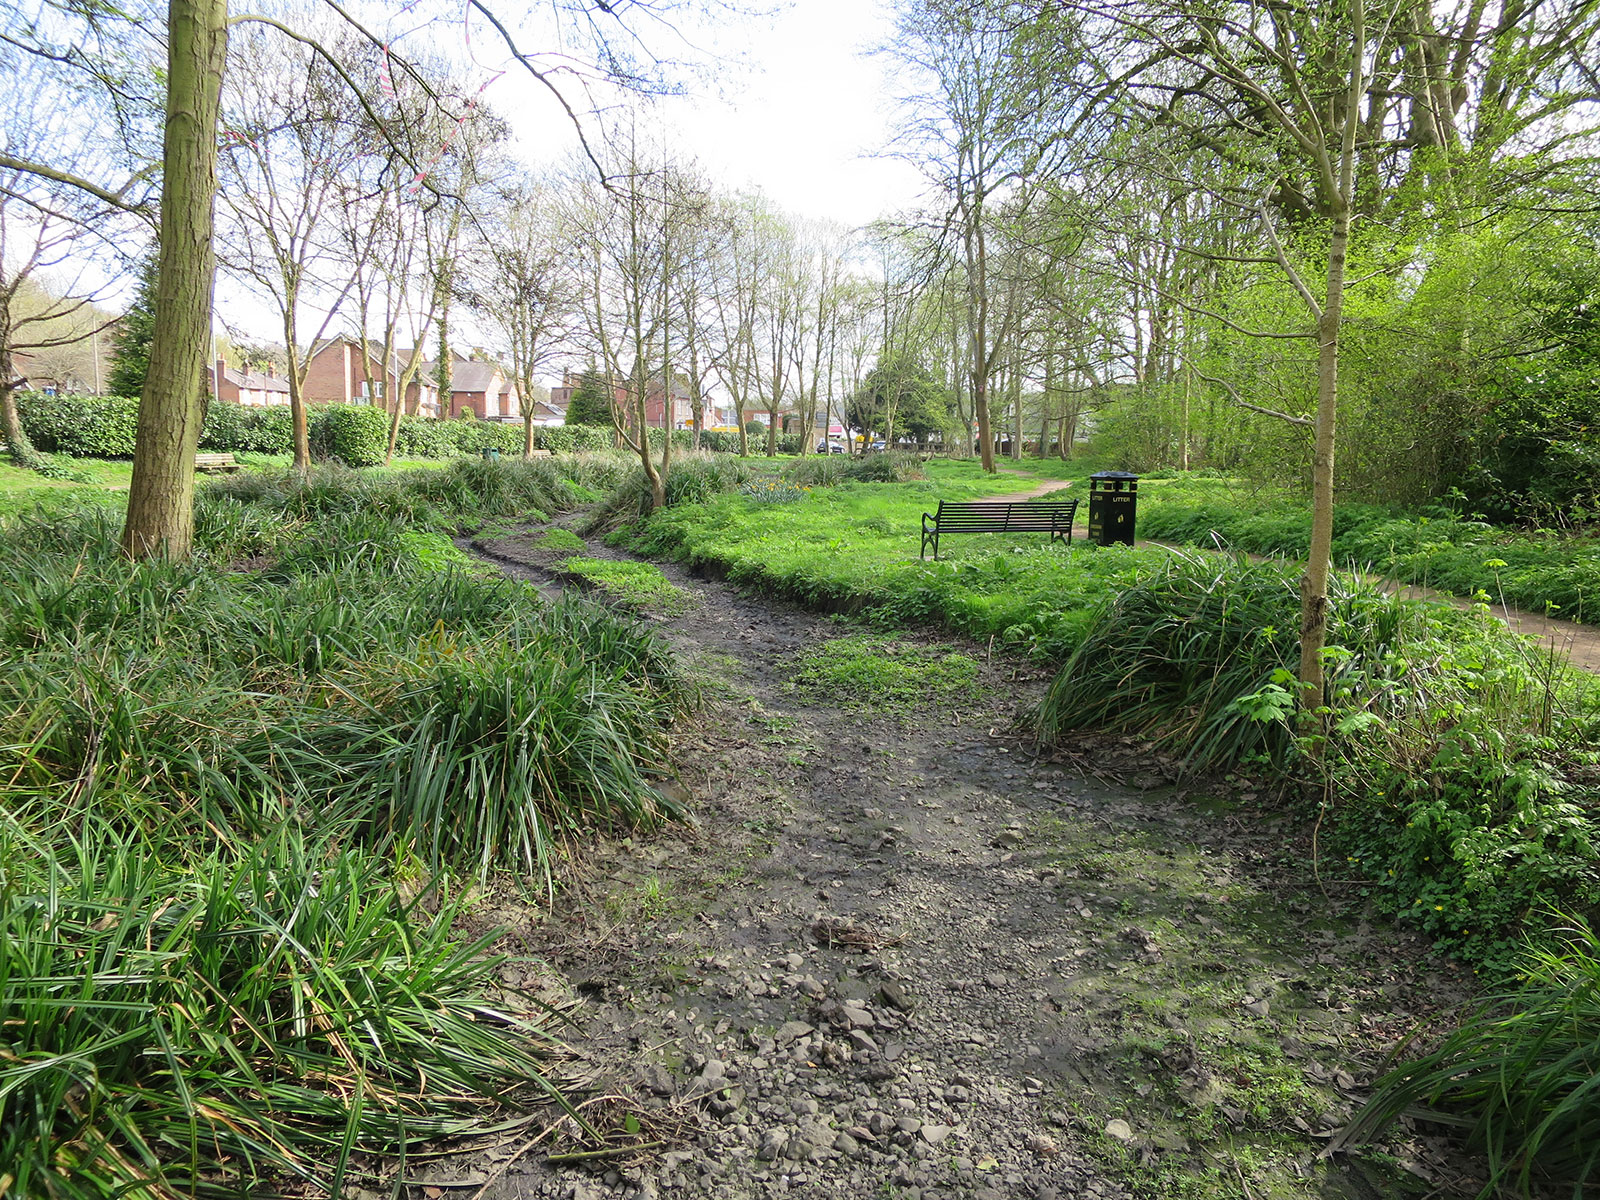 The bare river bed of the River Chess in Chesham, Buckinghamshire.